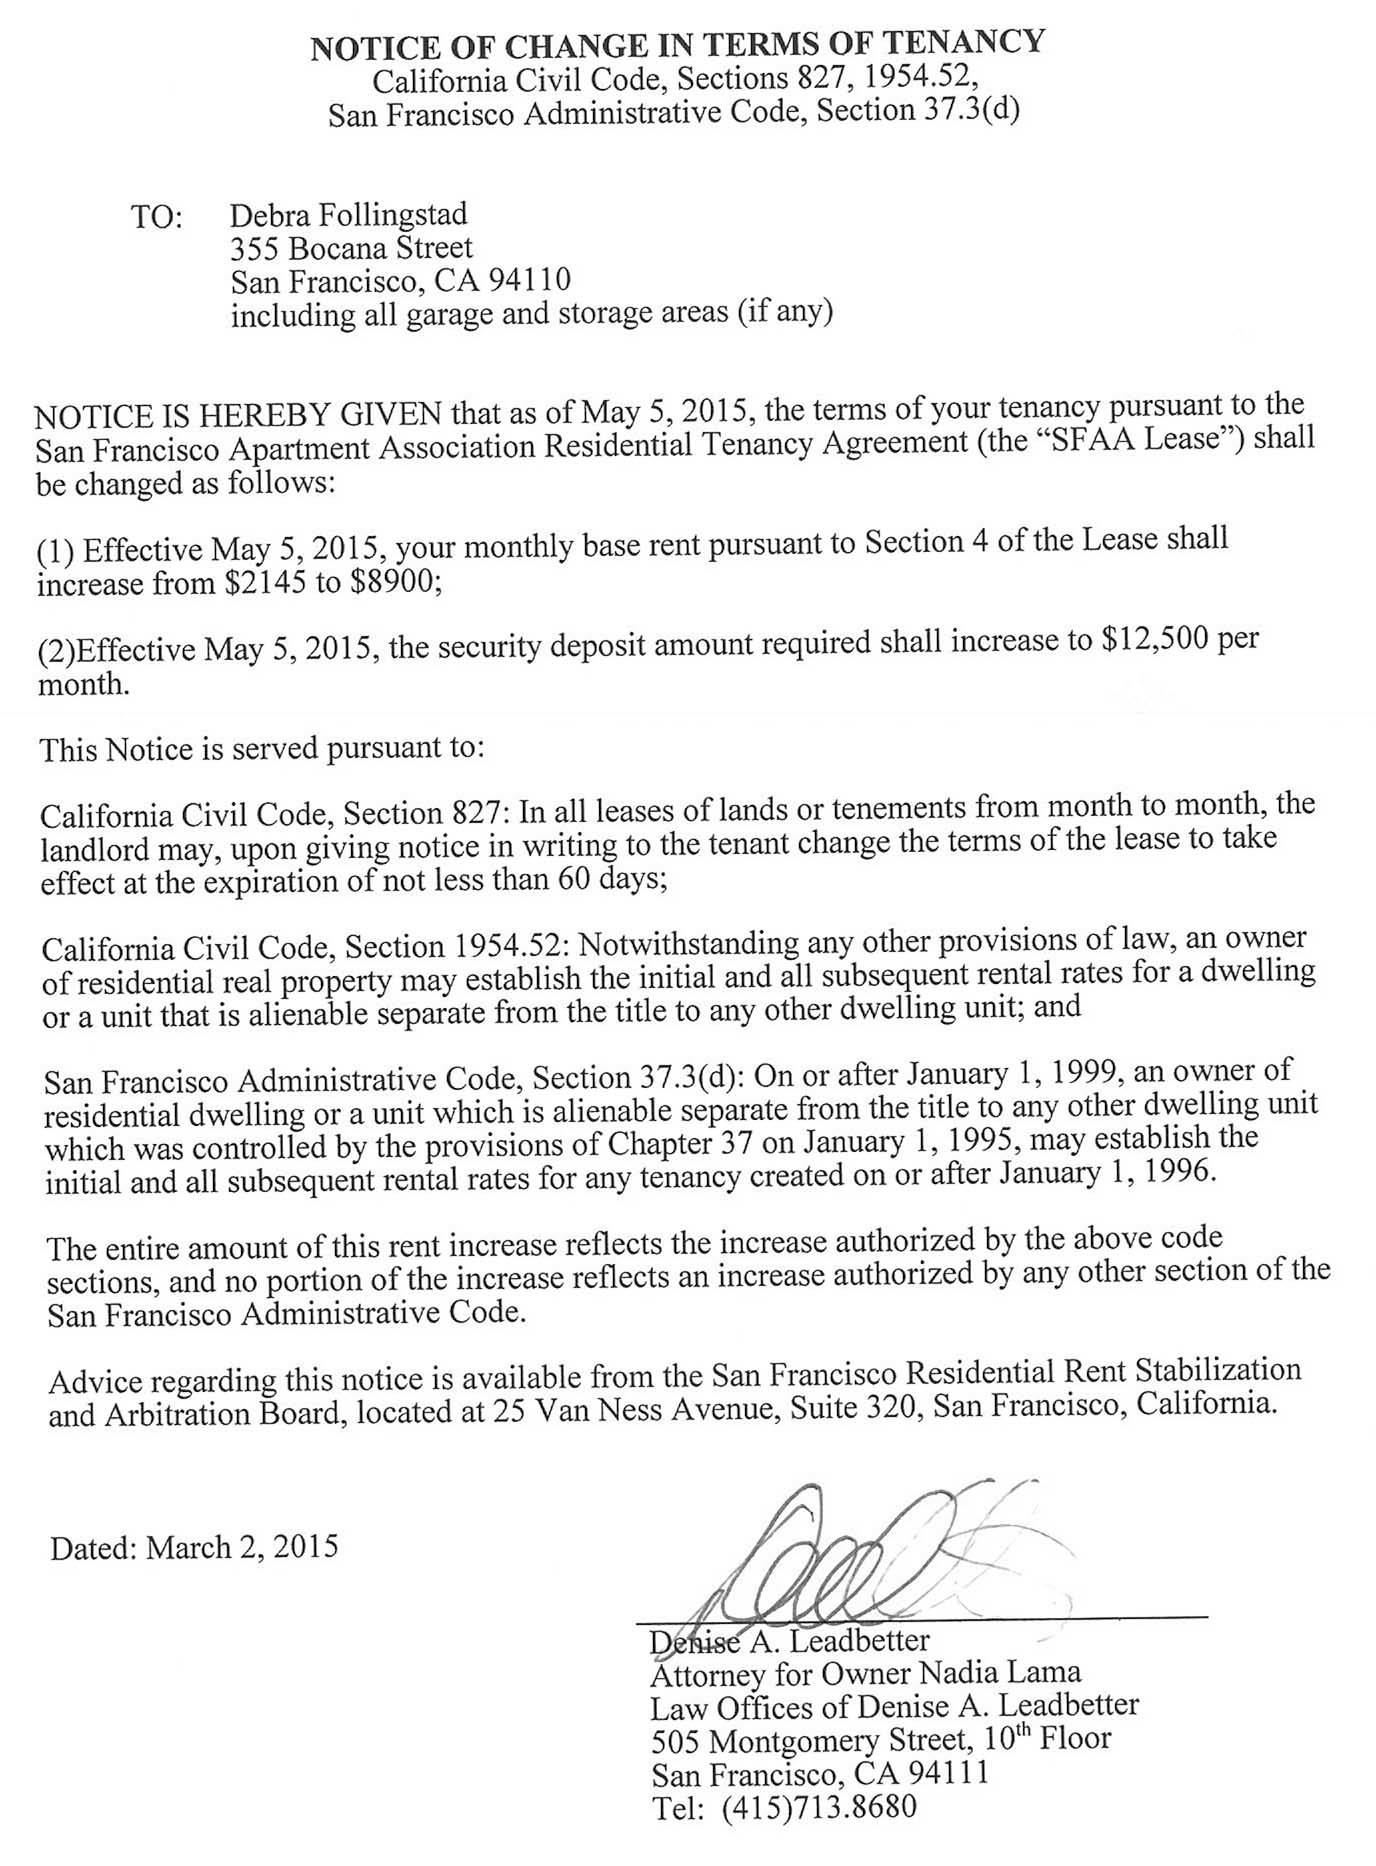 a page from the landlords letter informing bernal heights tenant deb follingstad her rent was rising